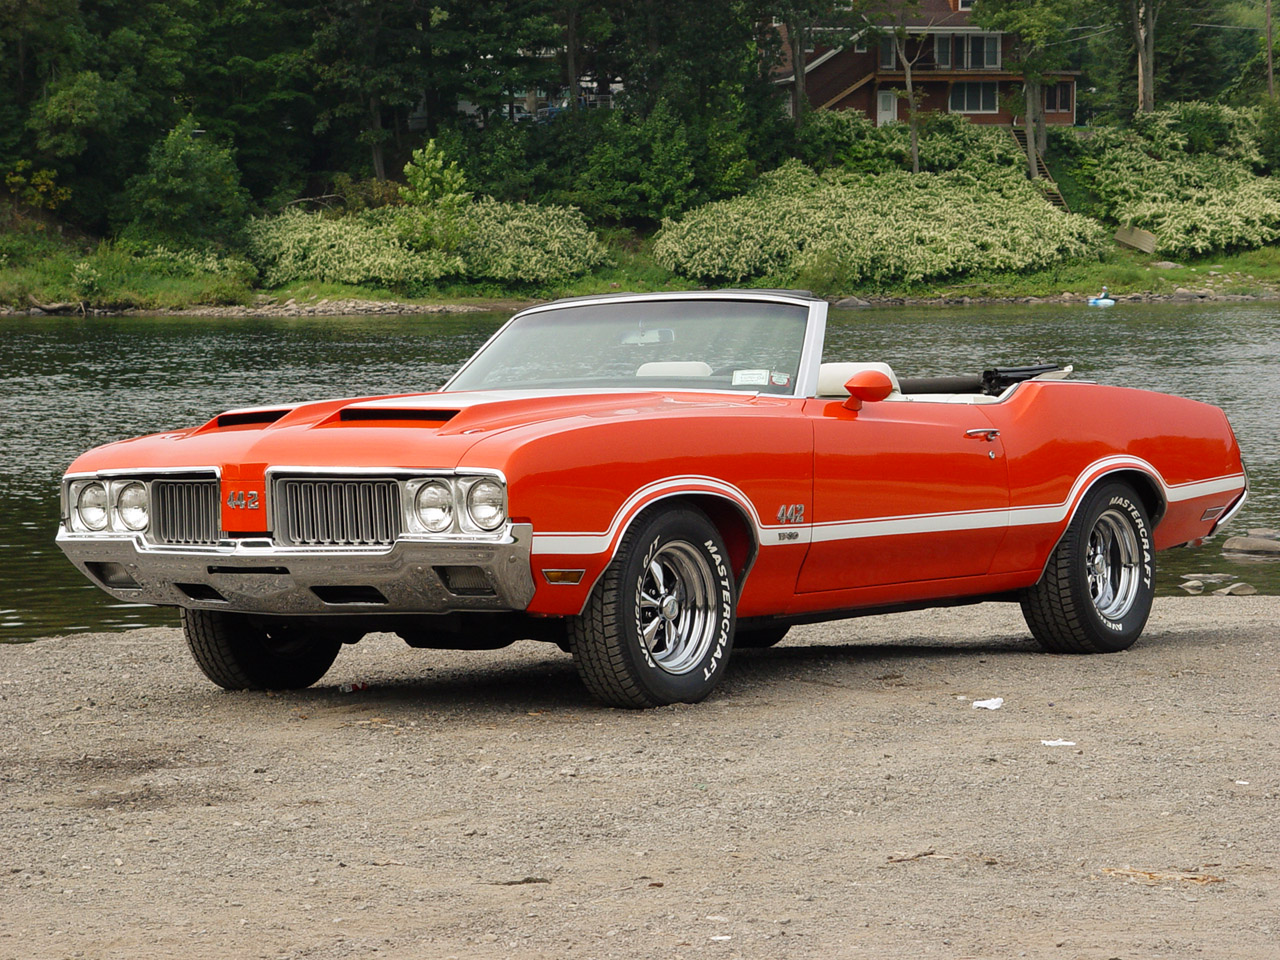 1970 oldsmobile 442 w30 2 door coupe rear 3 4 161422 - 1970 Oldsmobile 442 W30 Convertible Rear 3 4 116154 1000x667 9ql